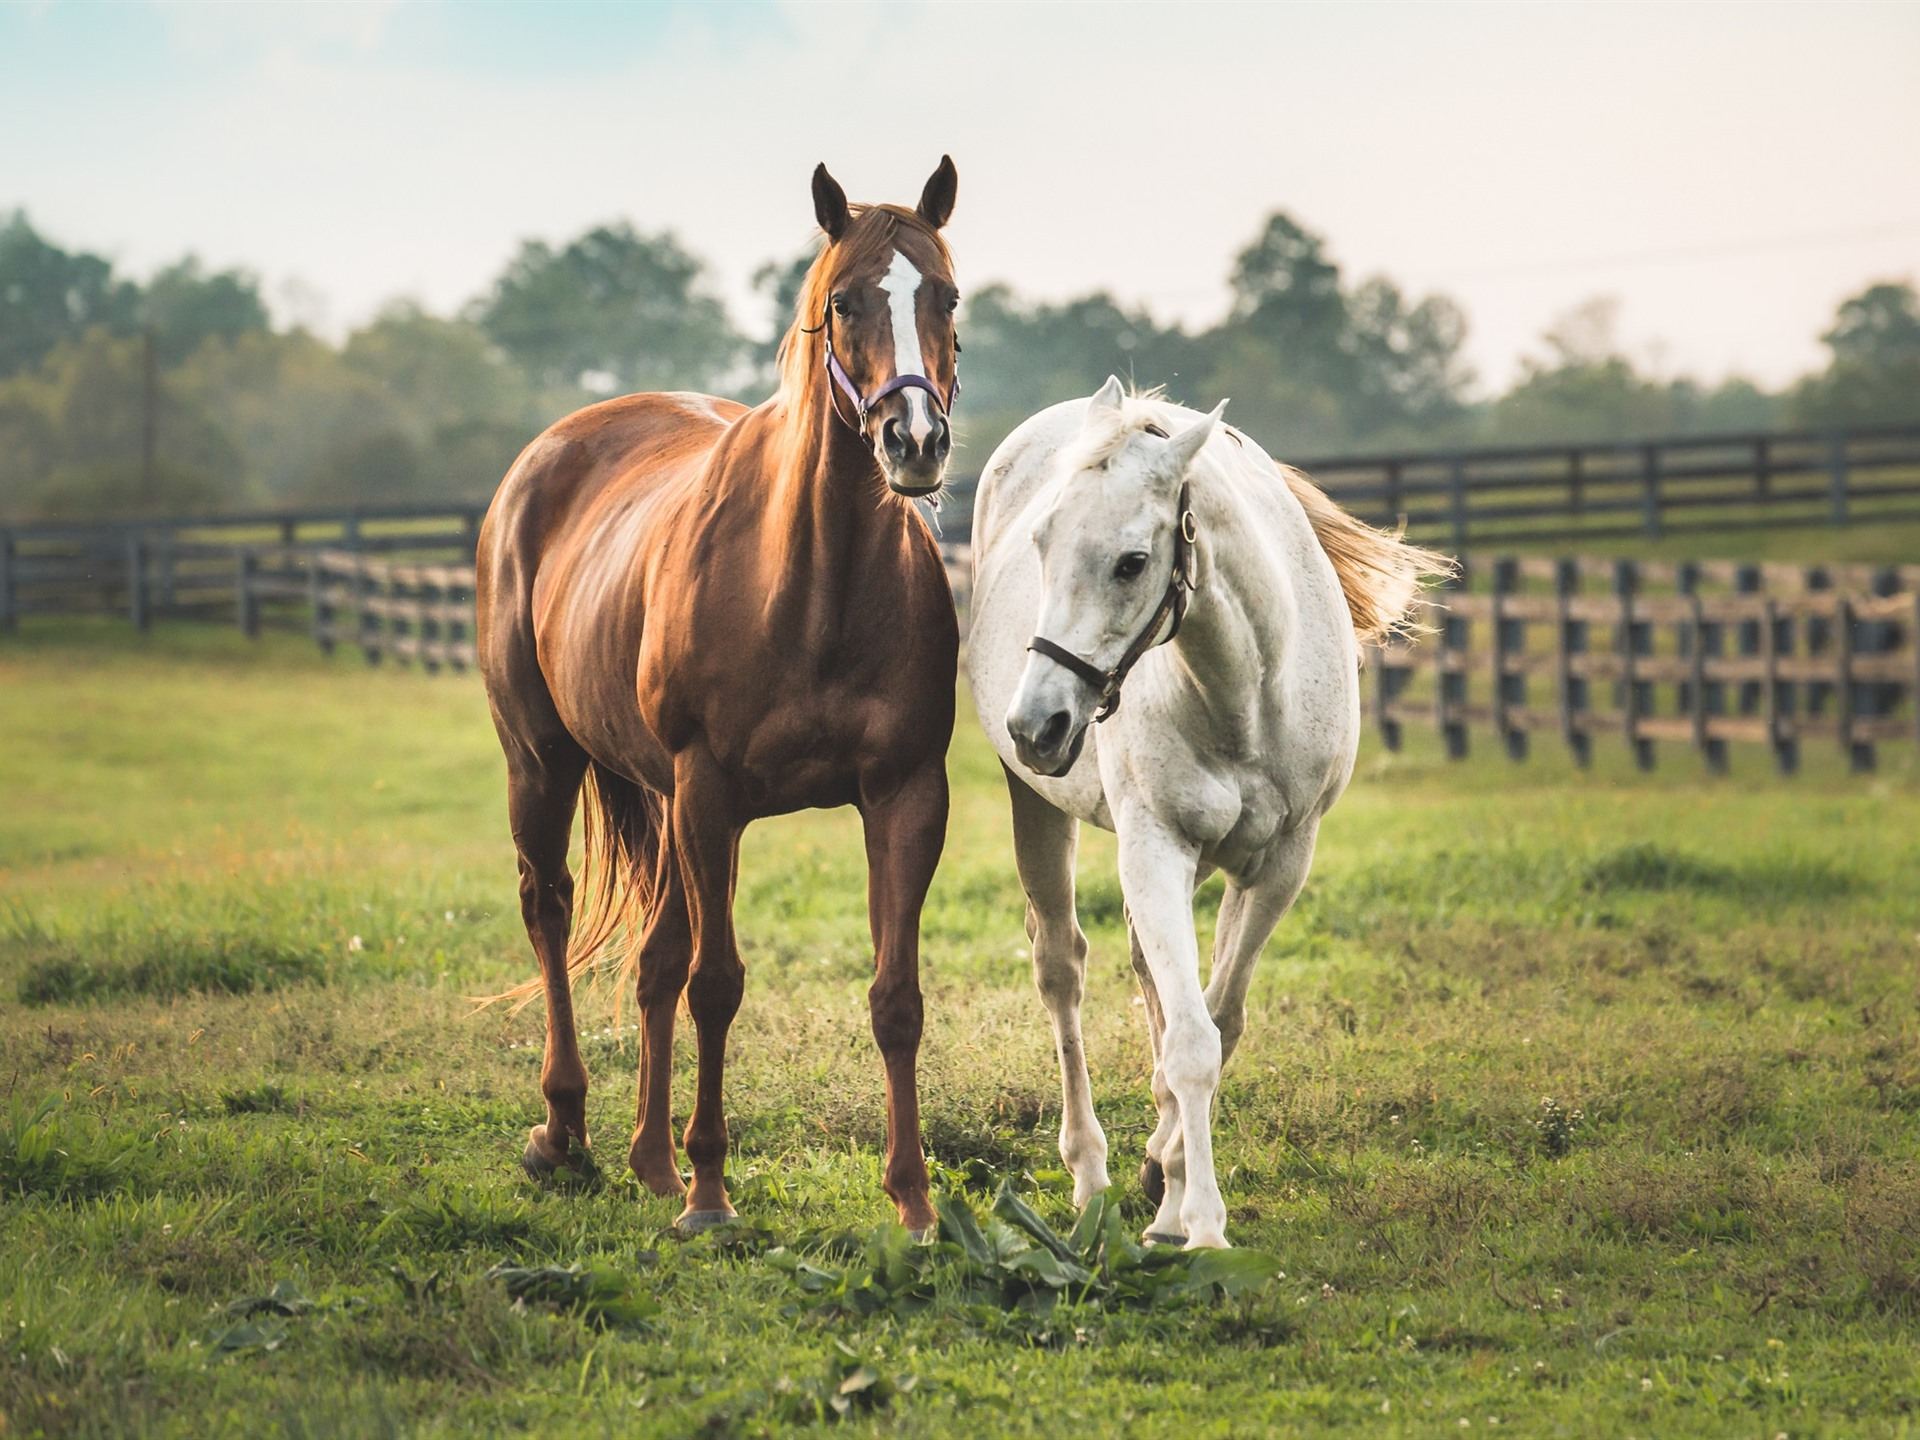 Wallpaper Two Horses White And Brown 1920x1440 Hd Picture Image